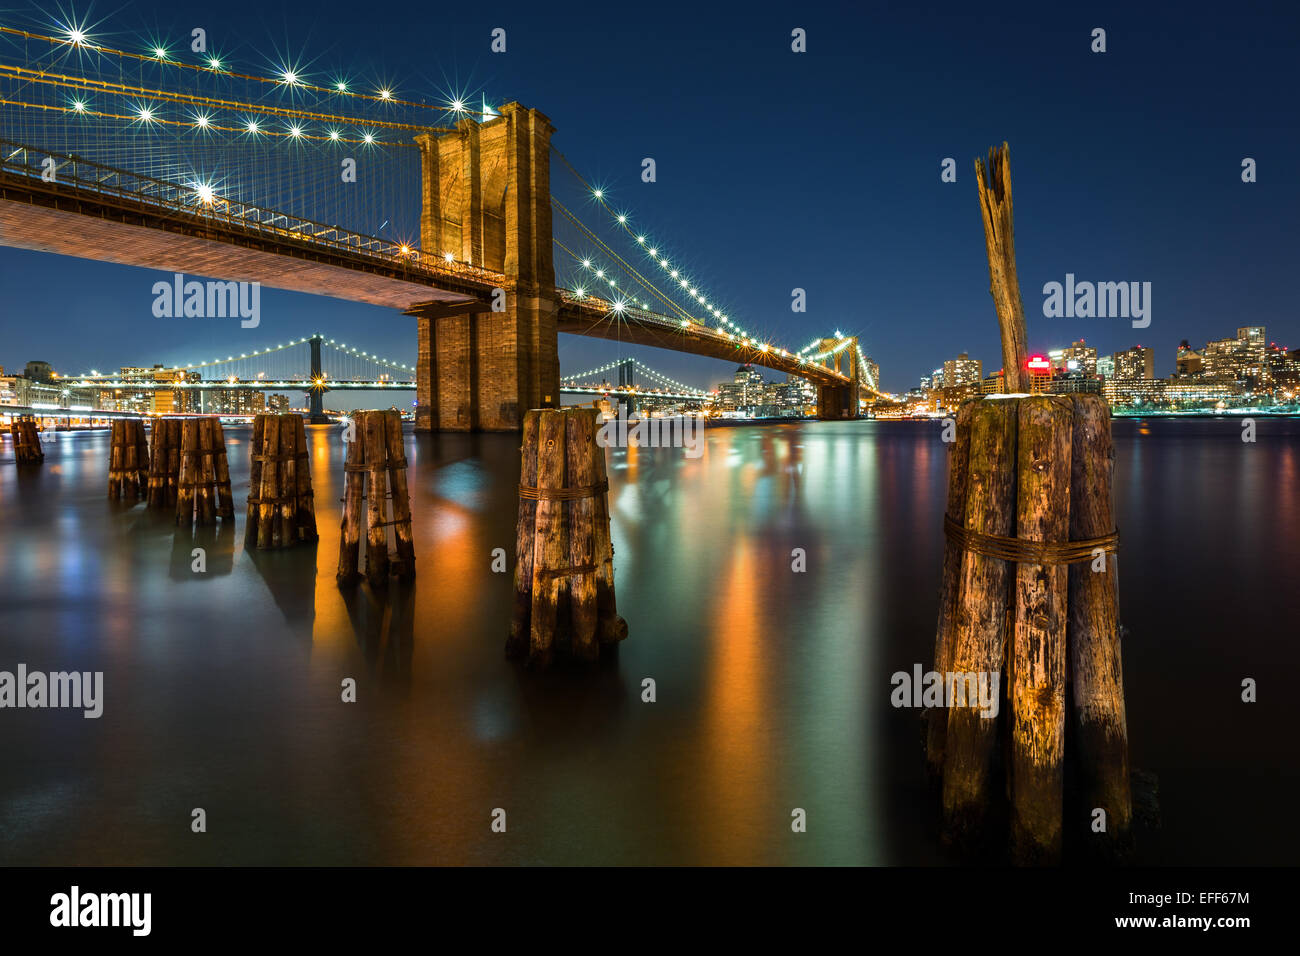 Illuminated Brooklyn Bridge by night as viewed from the Manhattan side. - Stock Image